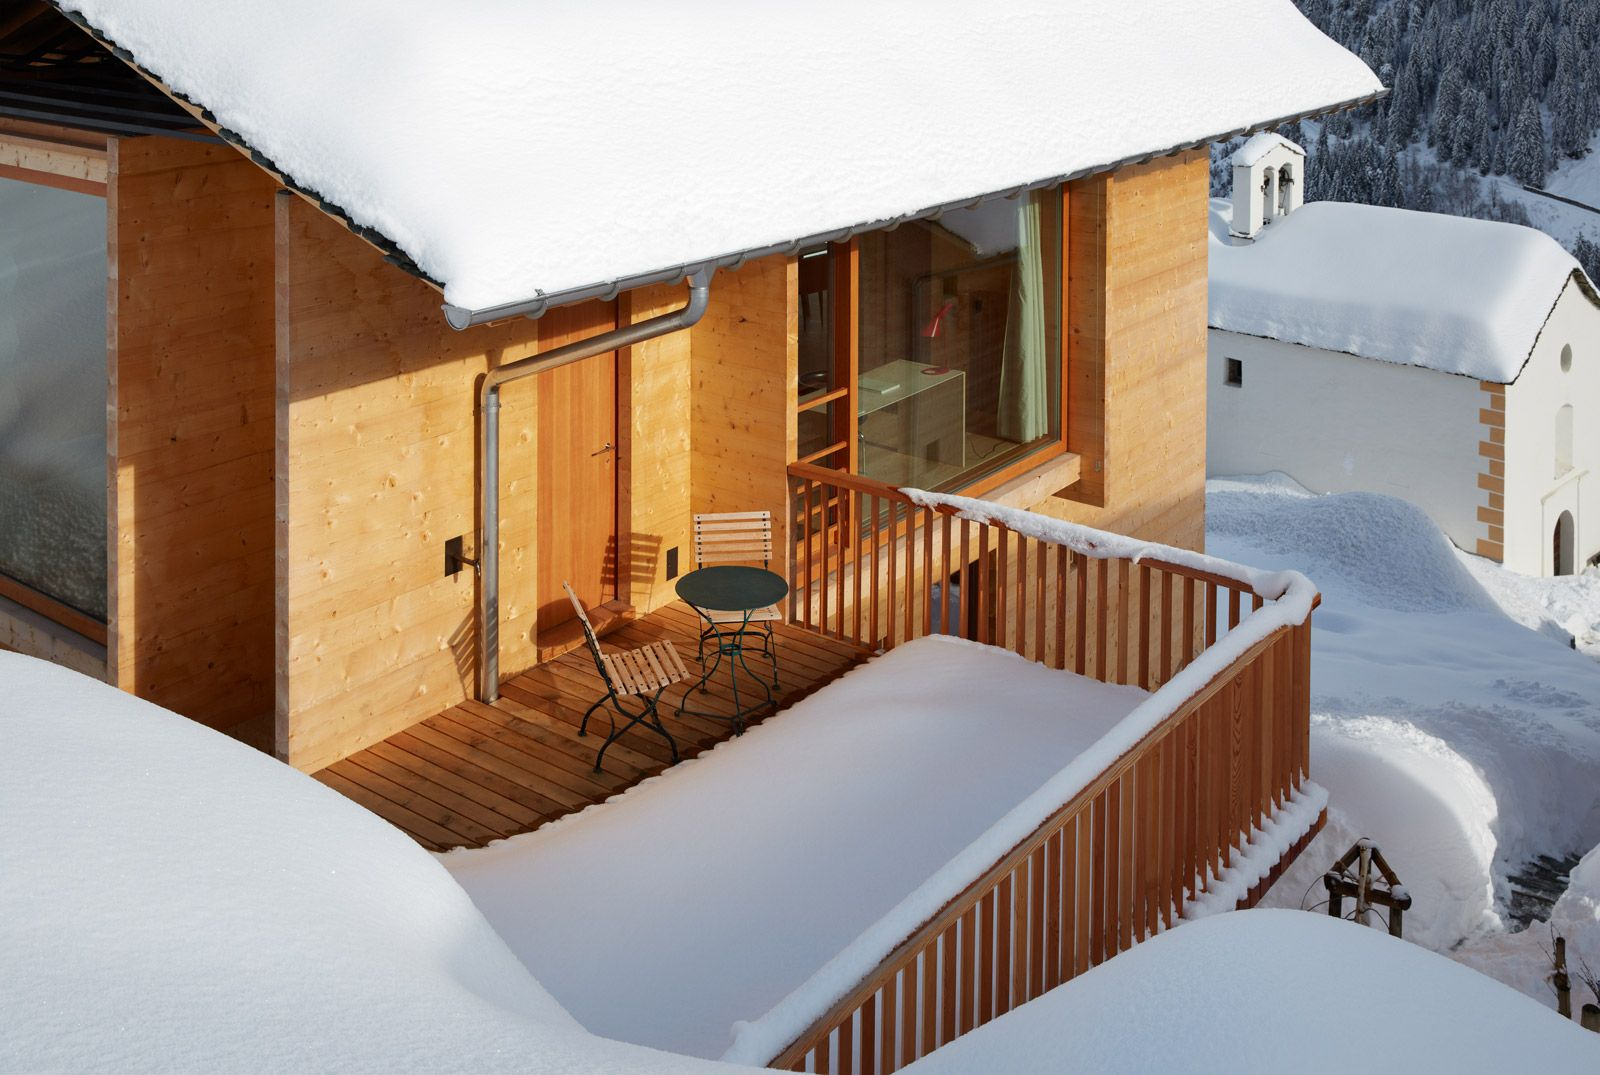 Peter Zumthor Timber Houses in Leis, Vals, Switzerland